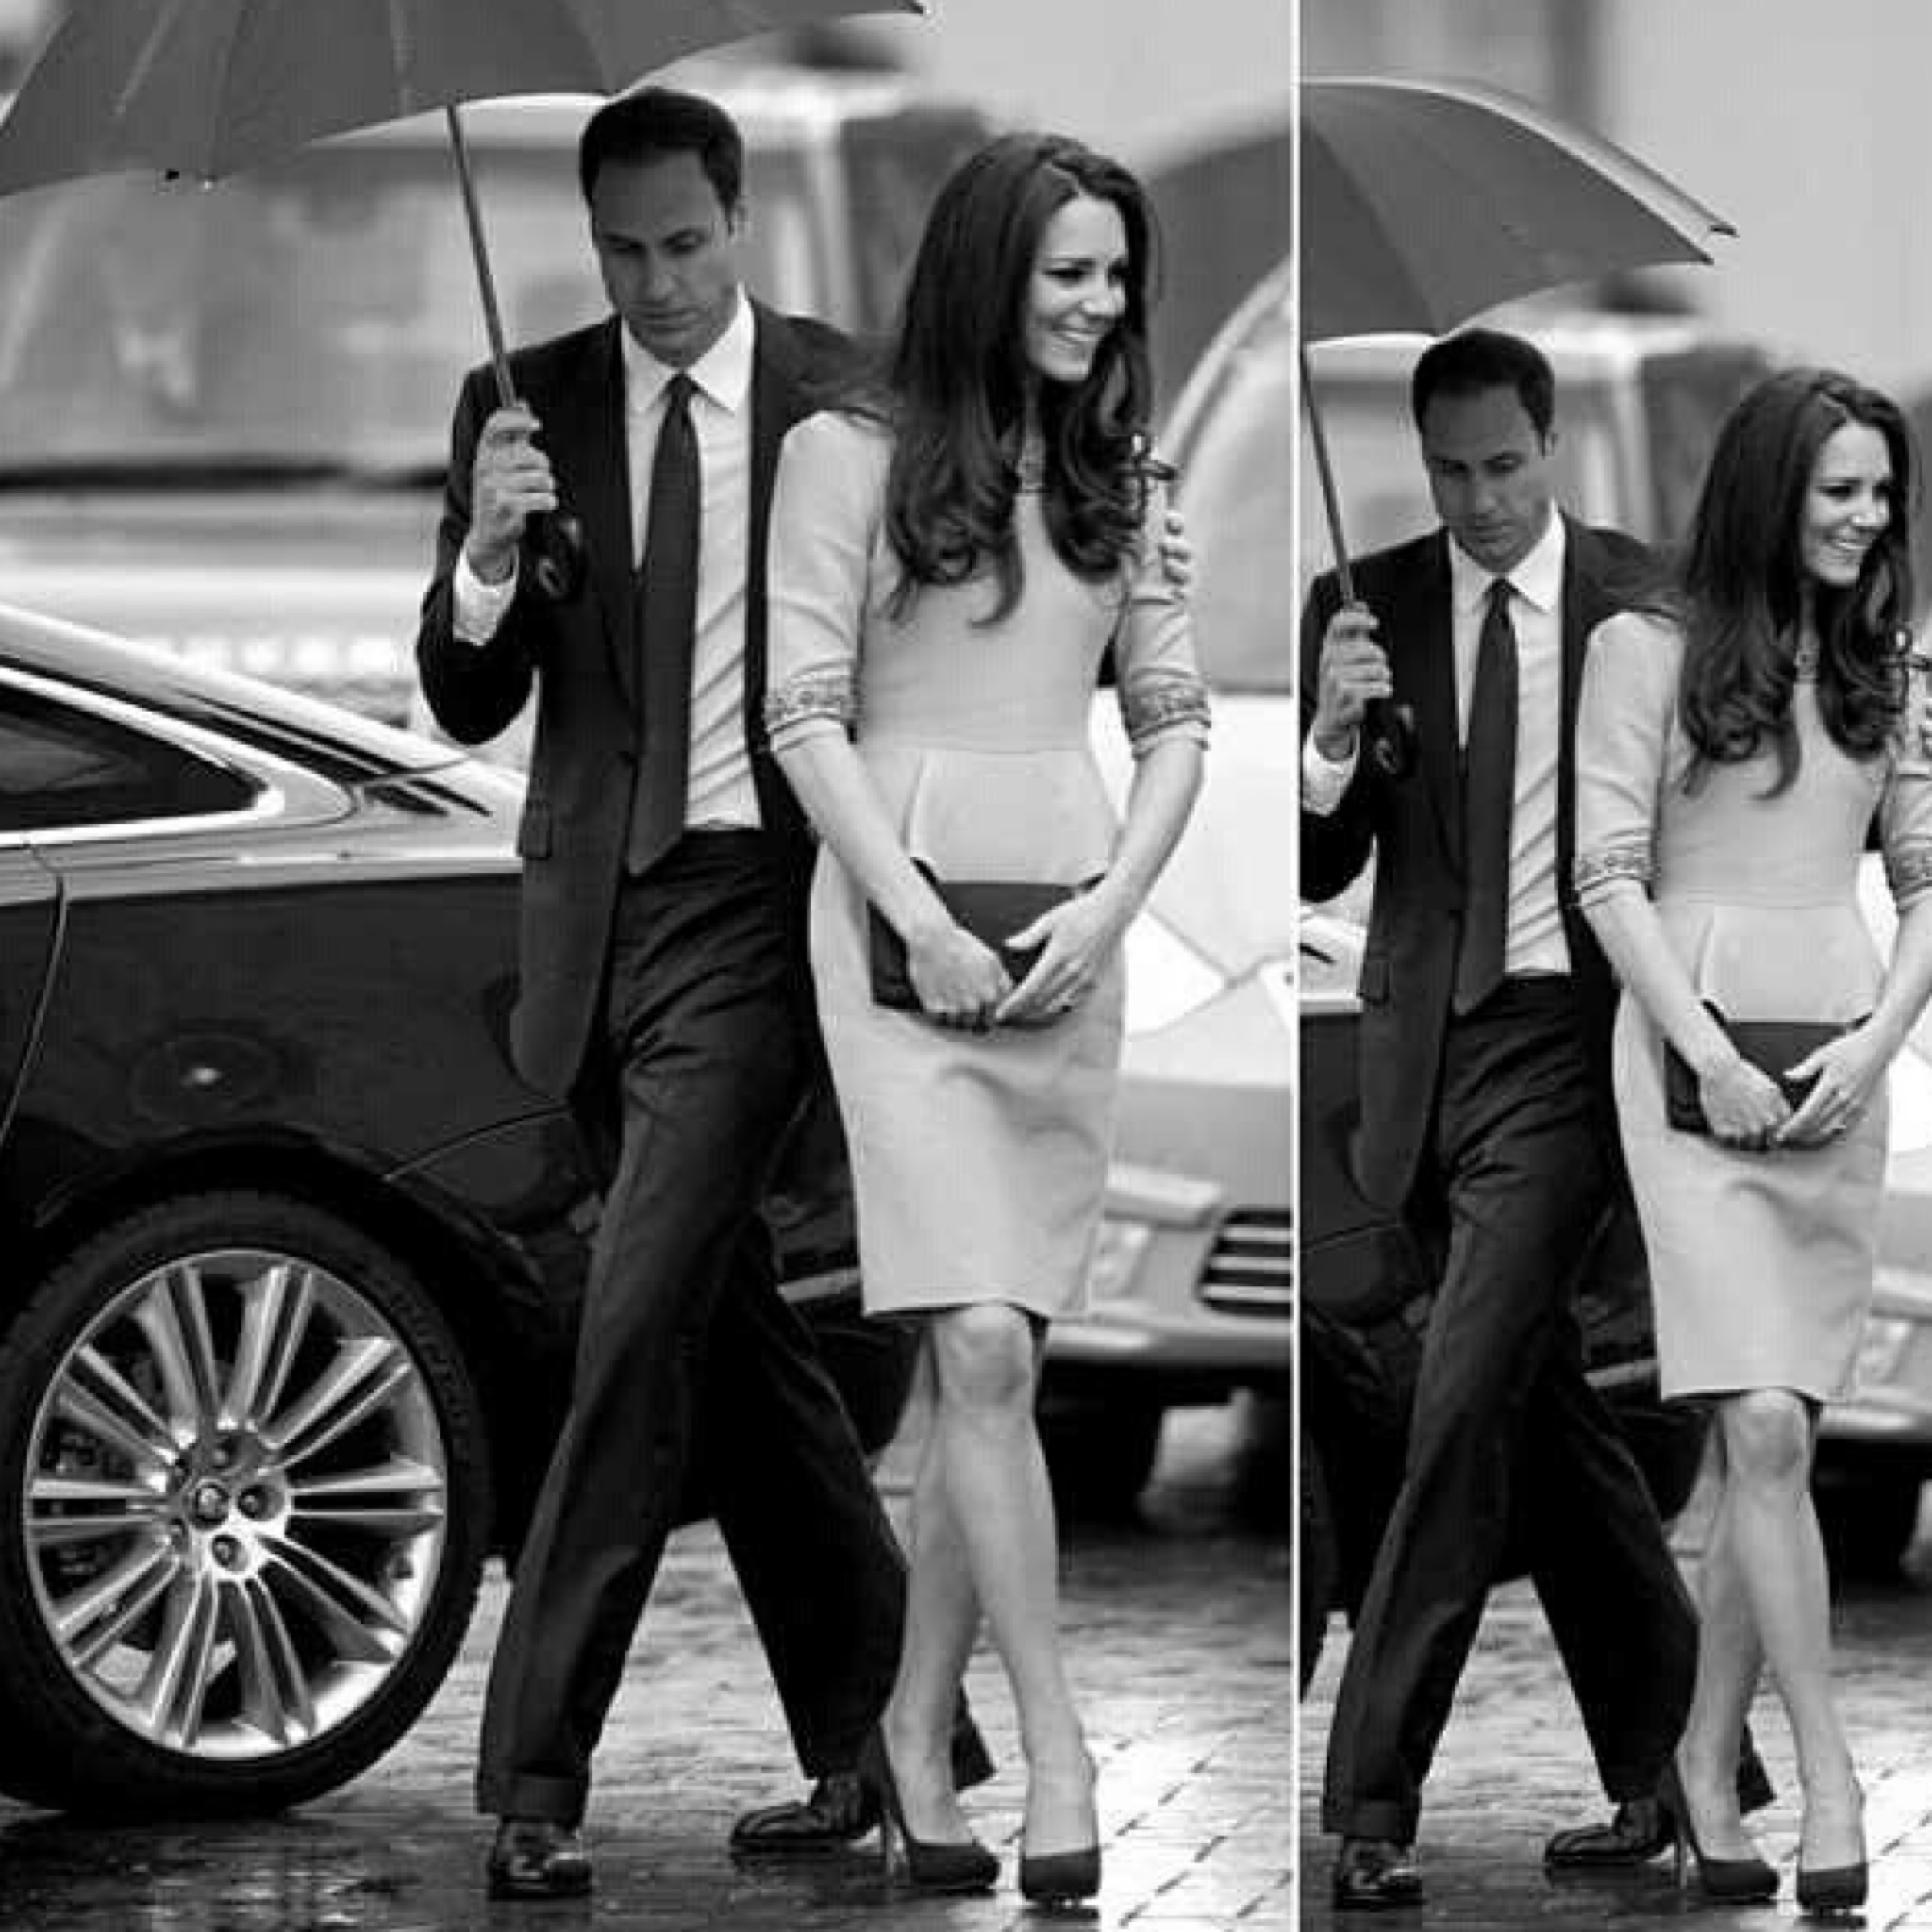 The Man Has Style - Rainy Days - William & Catherine